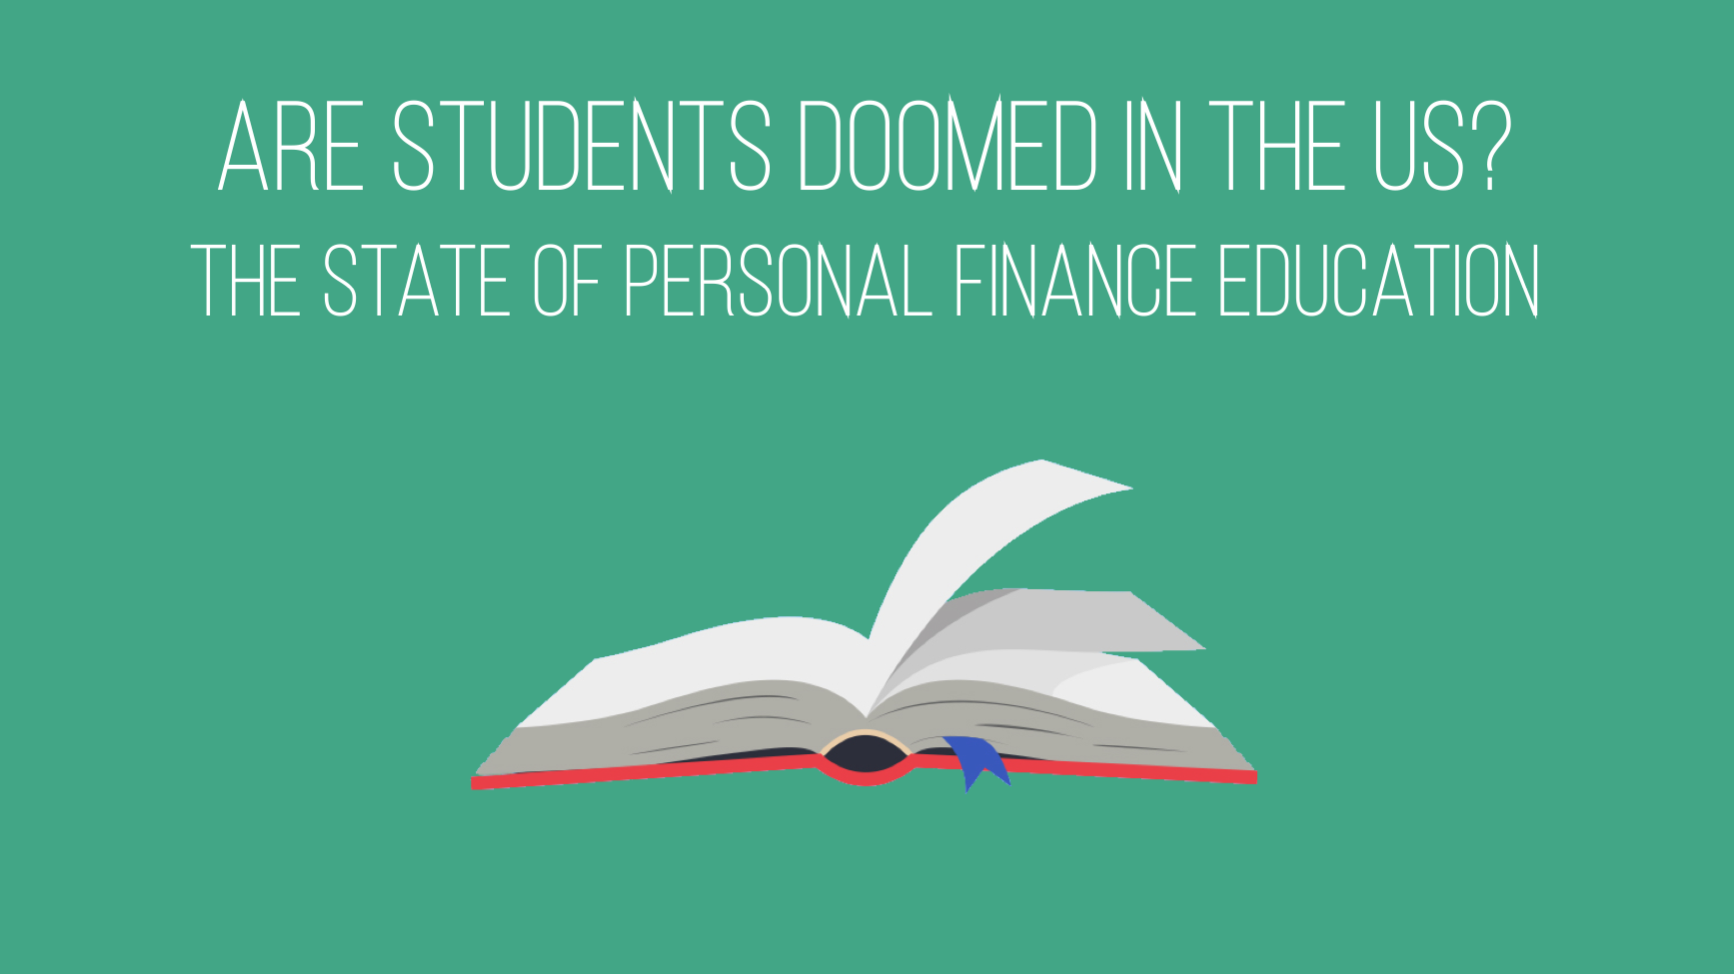 The less-than-desirable state of personal finance education